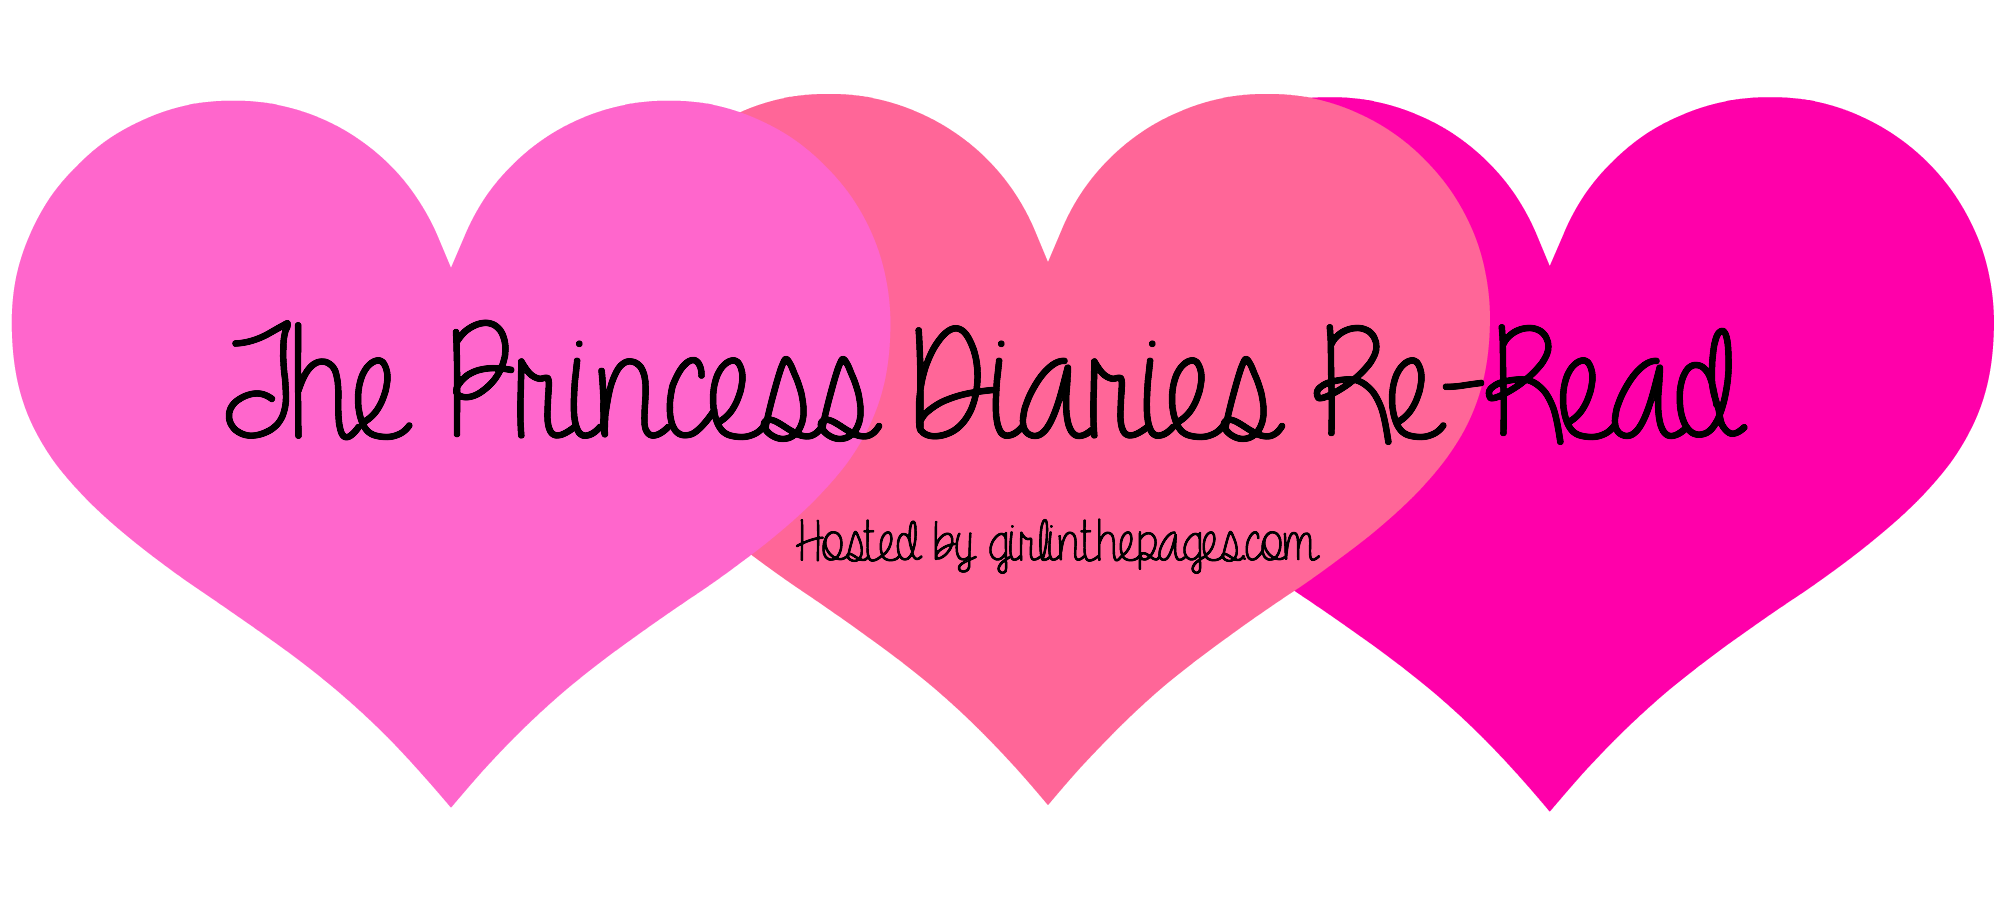 Princess Diaries Re-Read